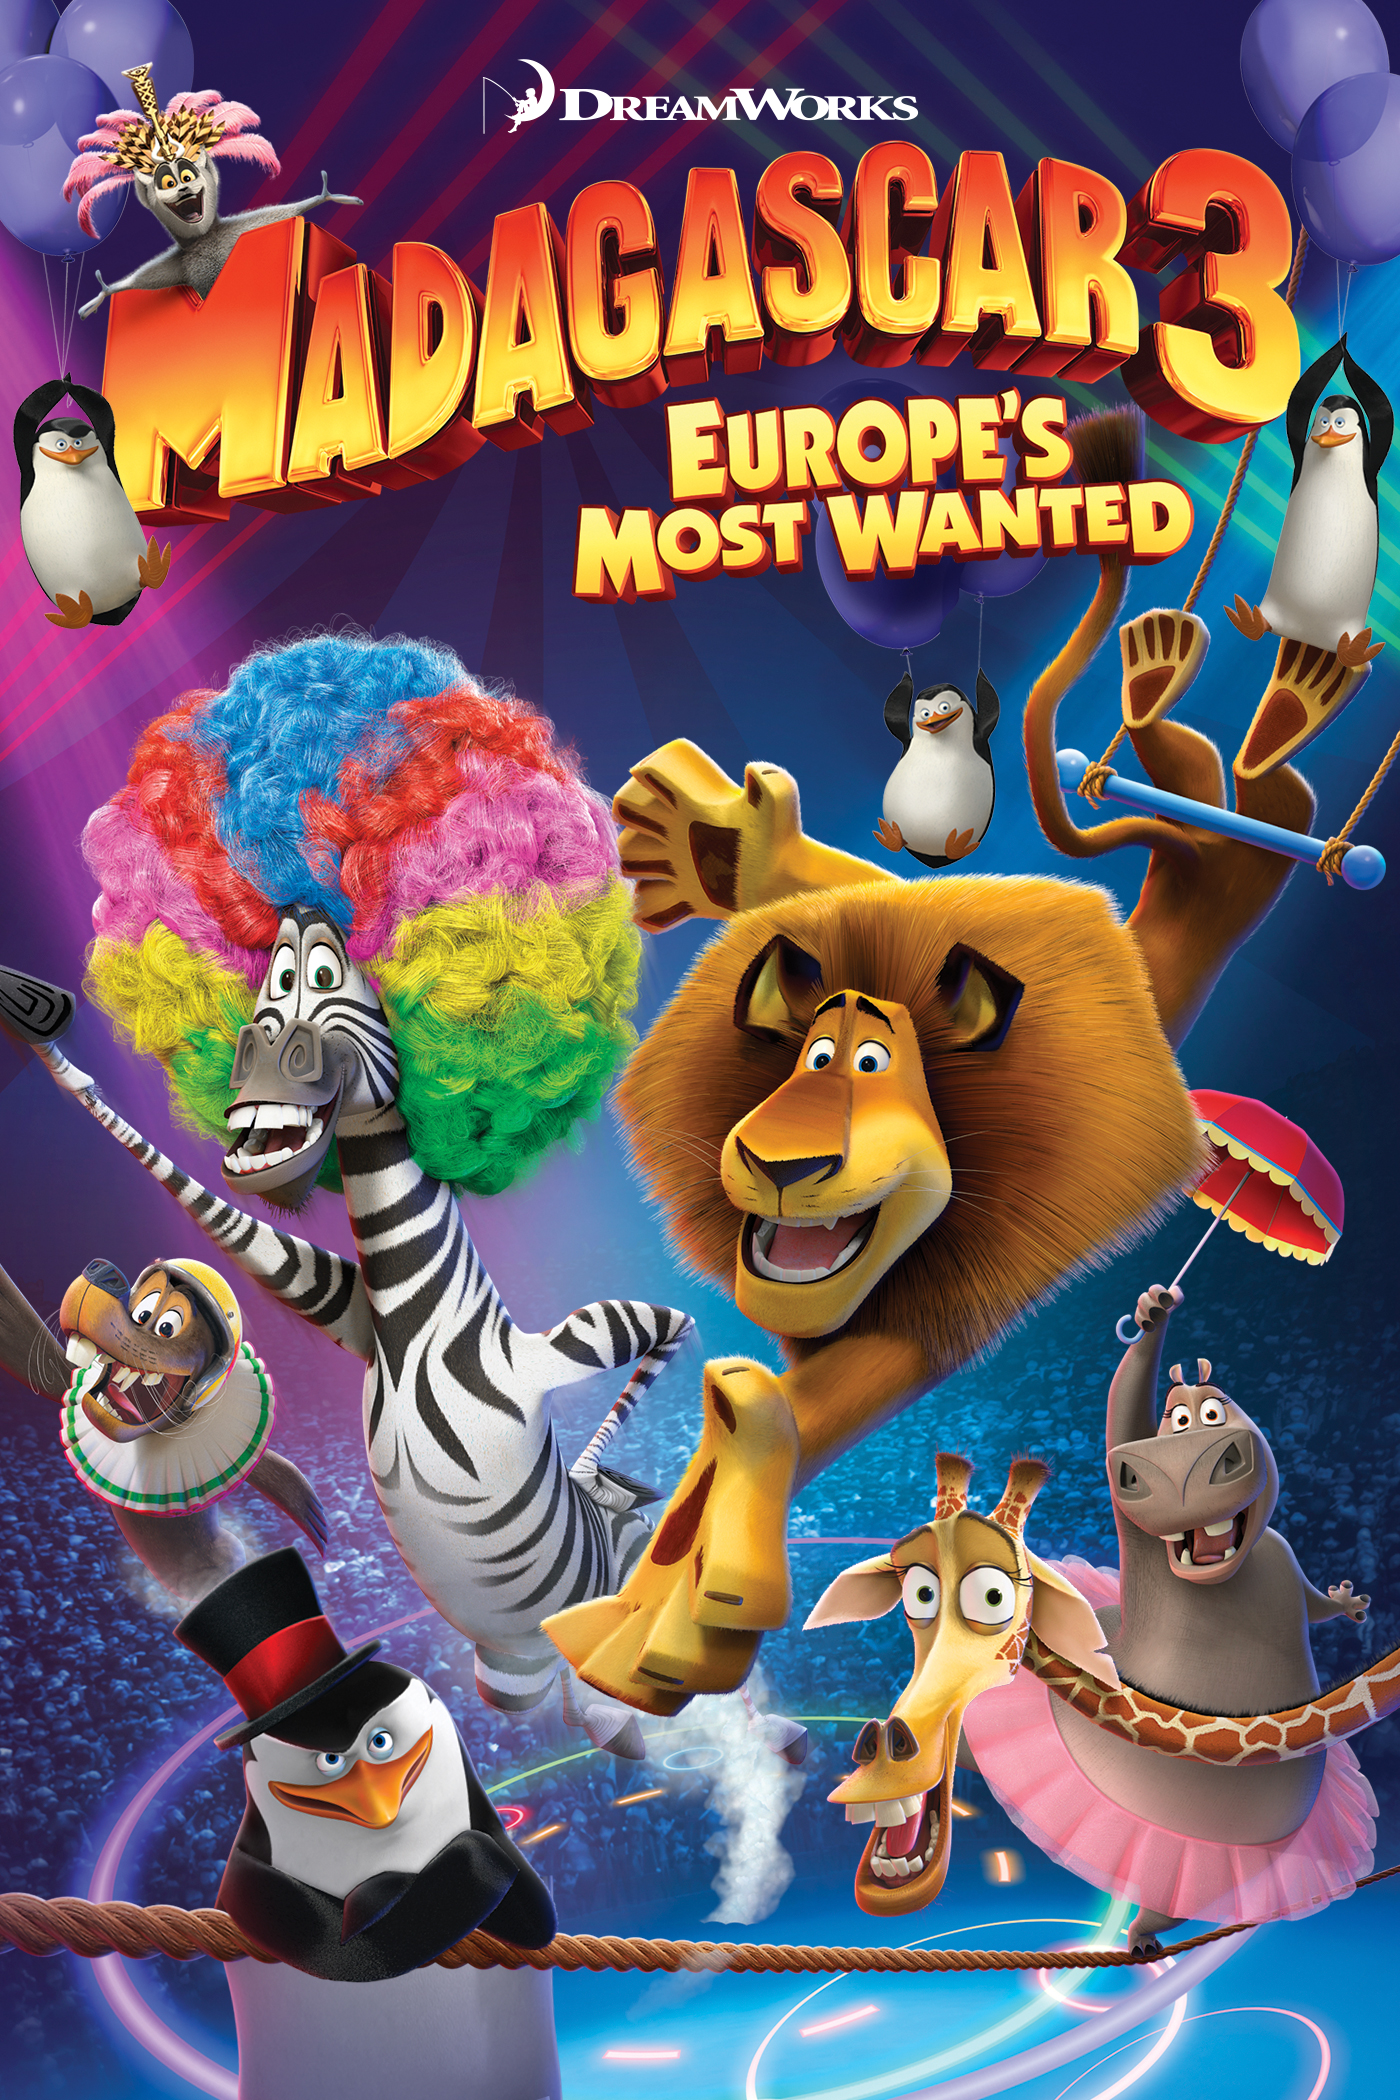 Madagascar 3: Europe's Most Wanted Home Video